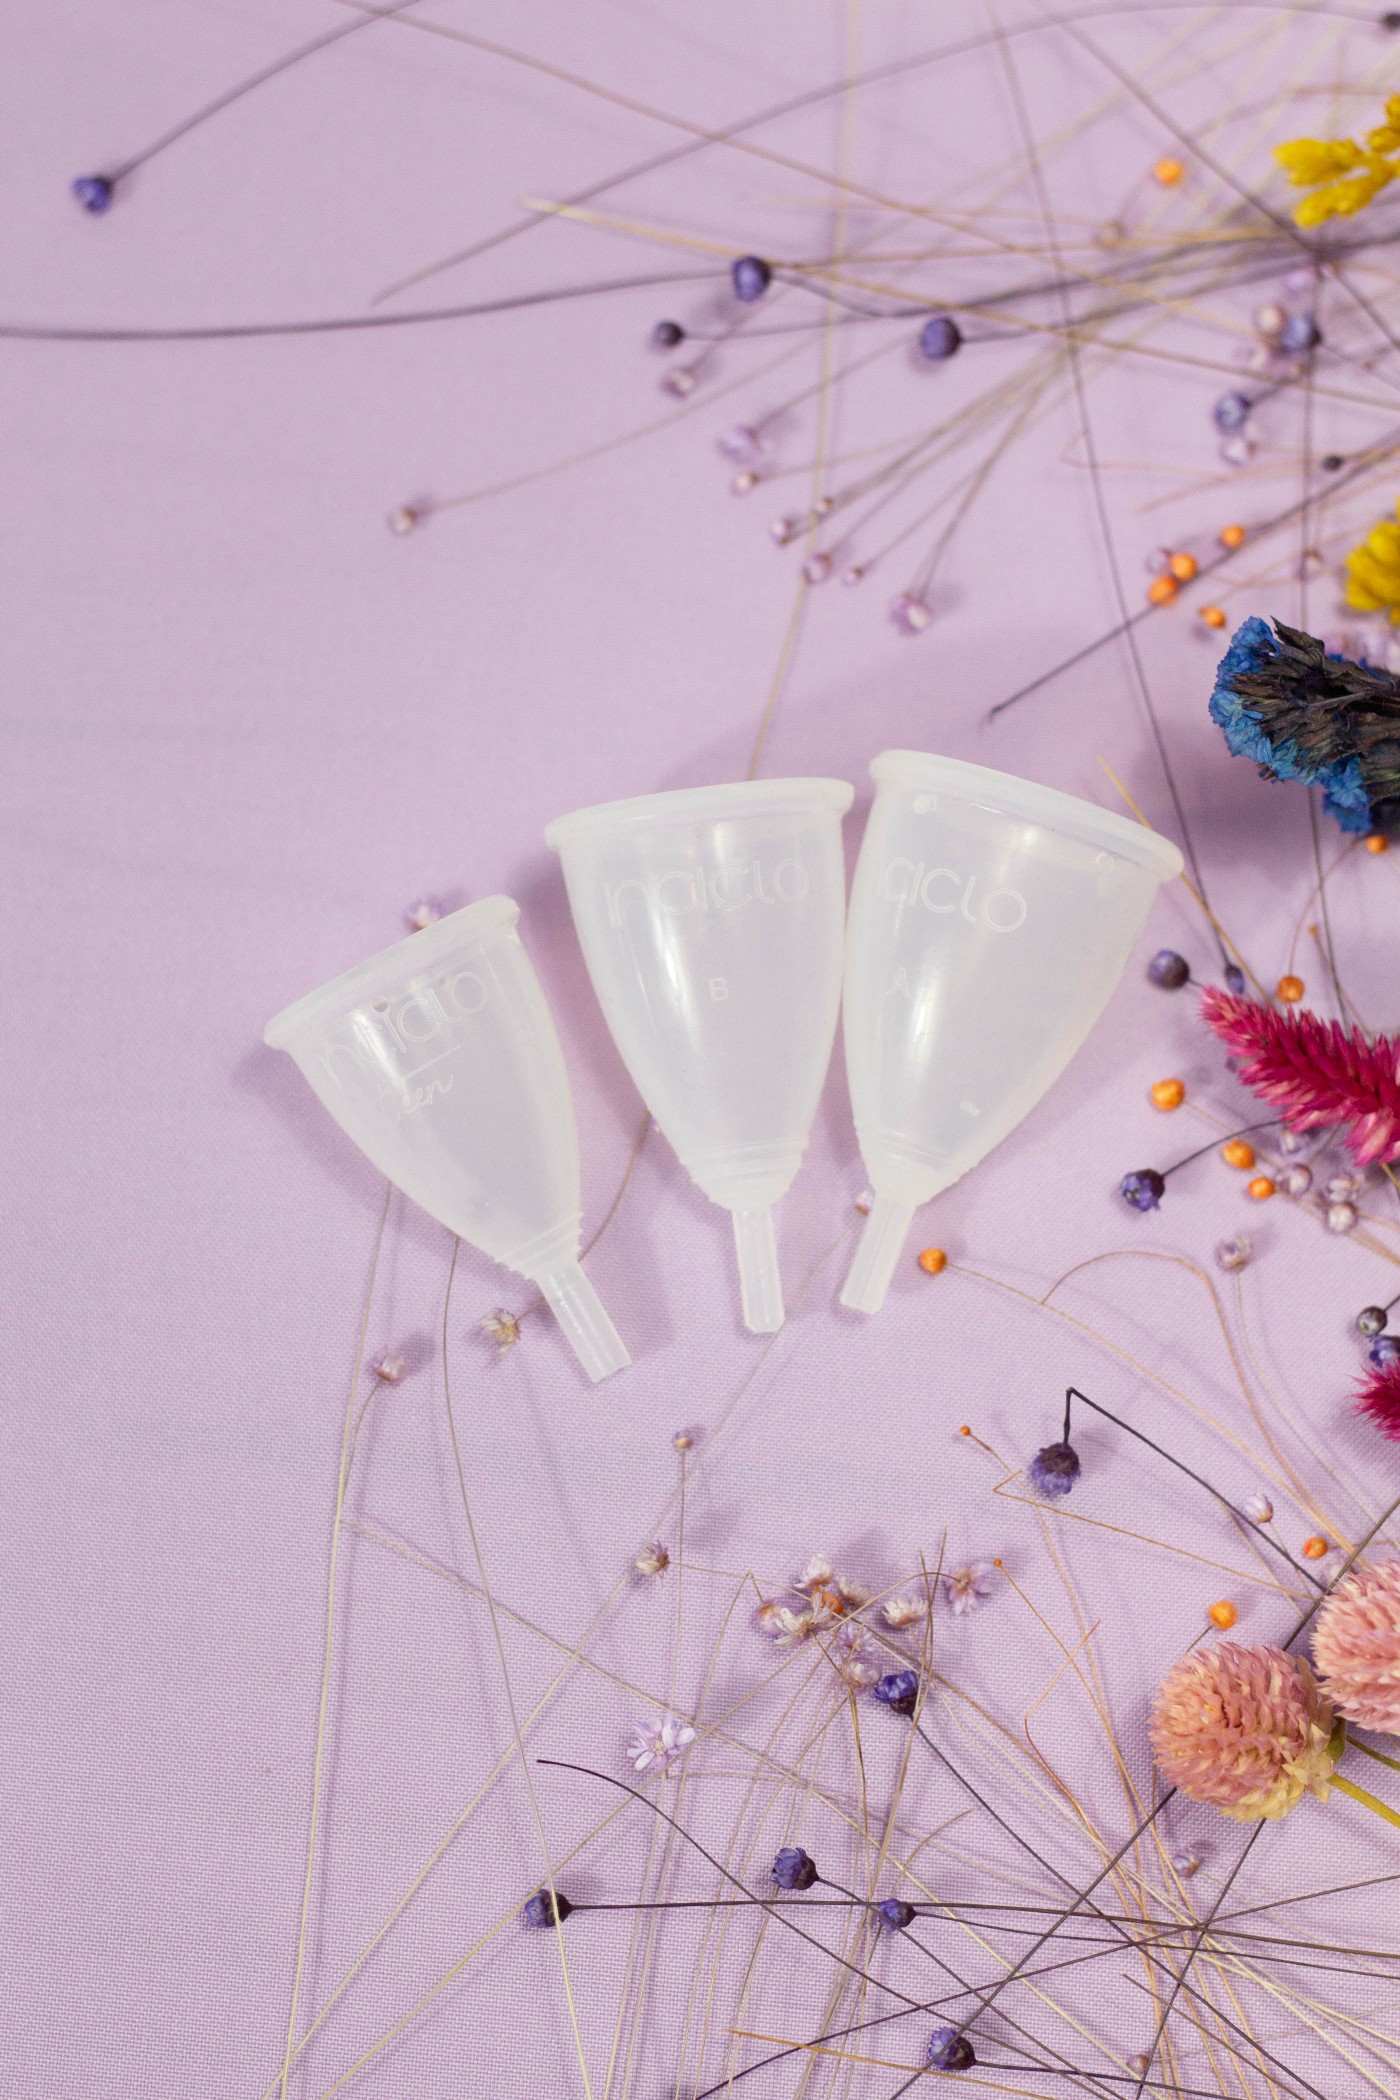 three white menstrual cups of three different sizes on a purple surface